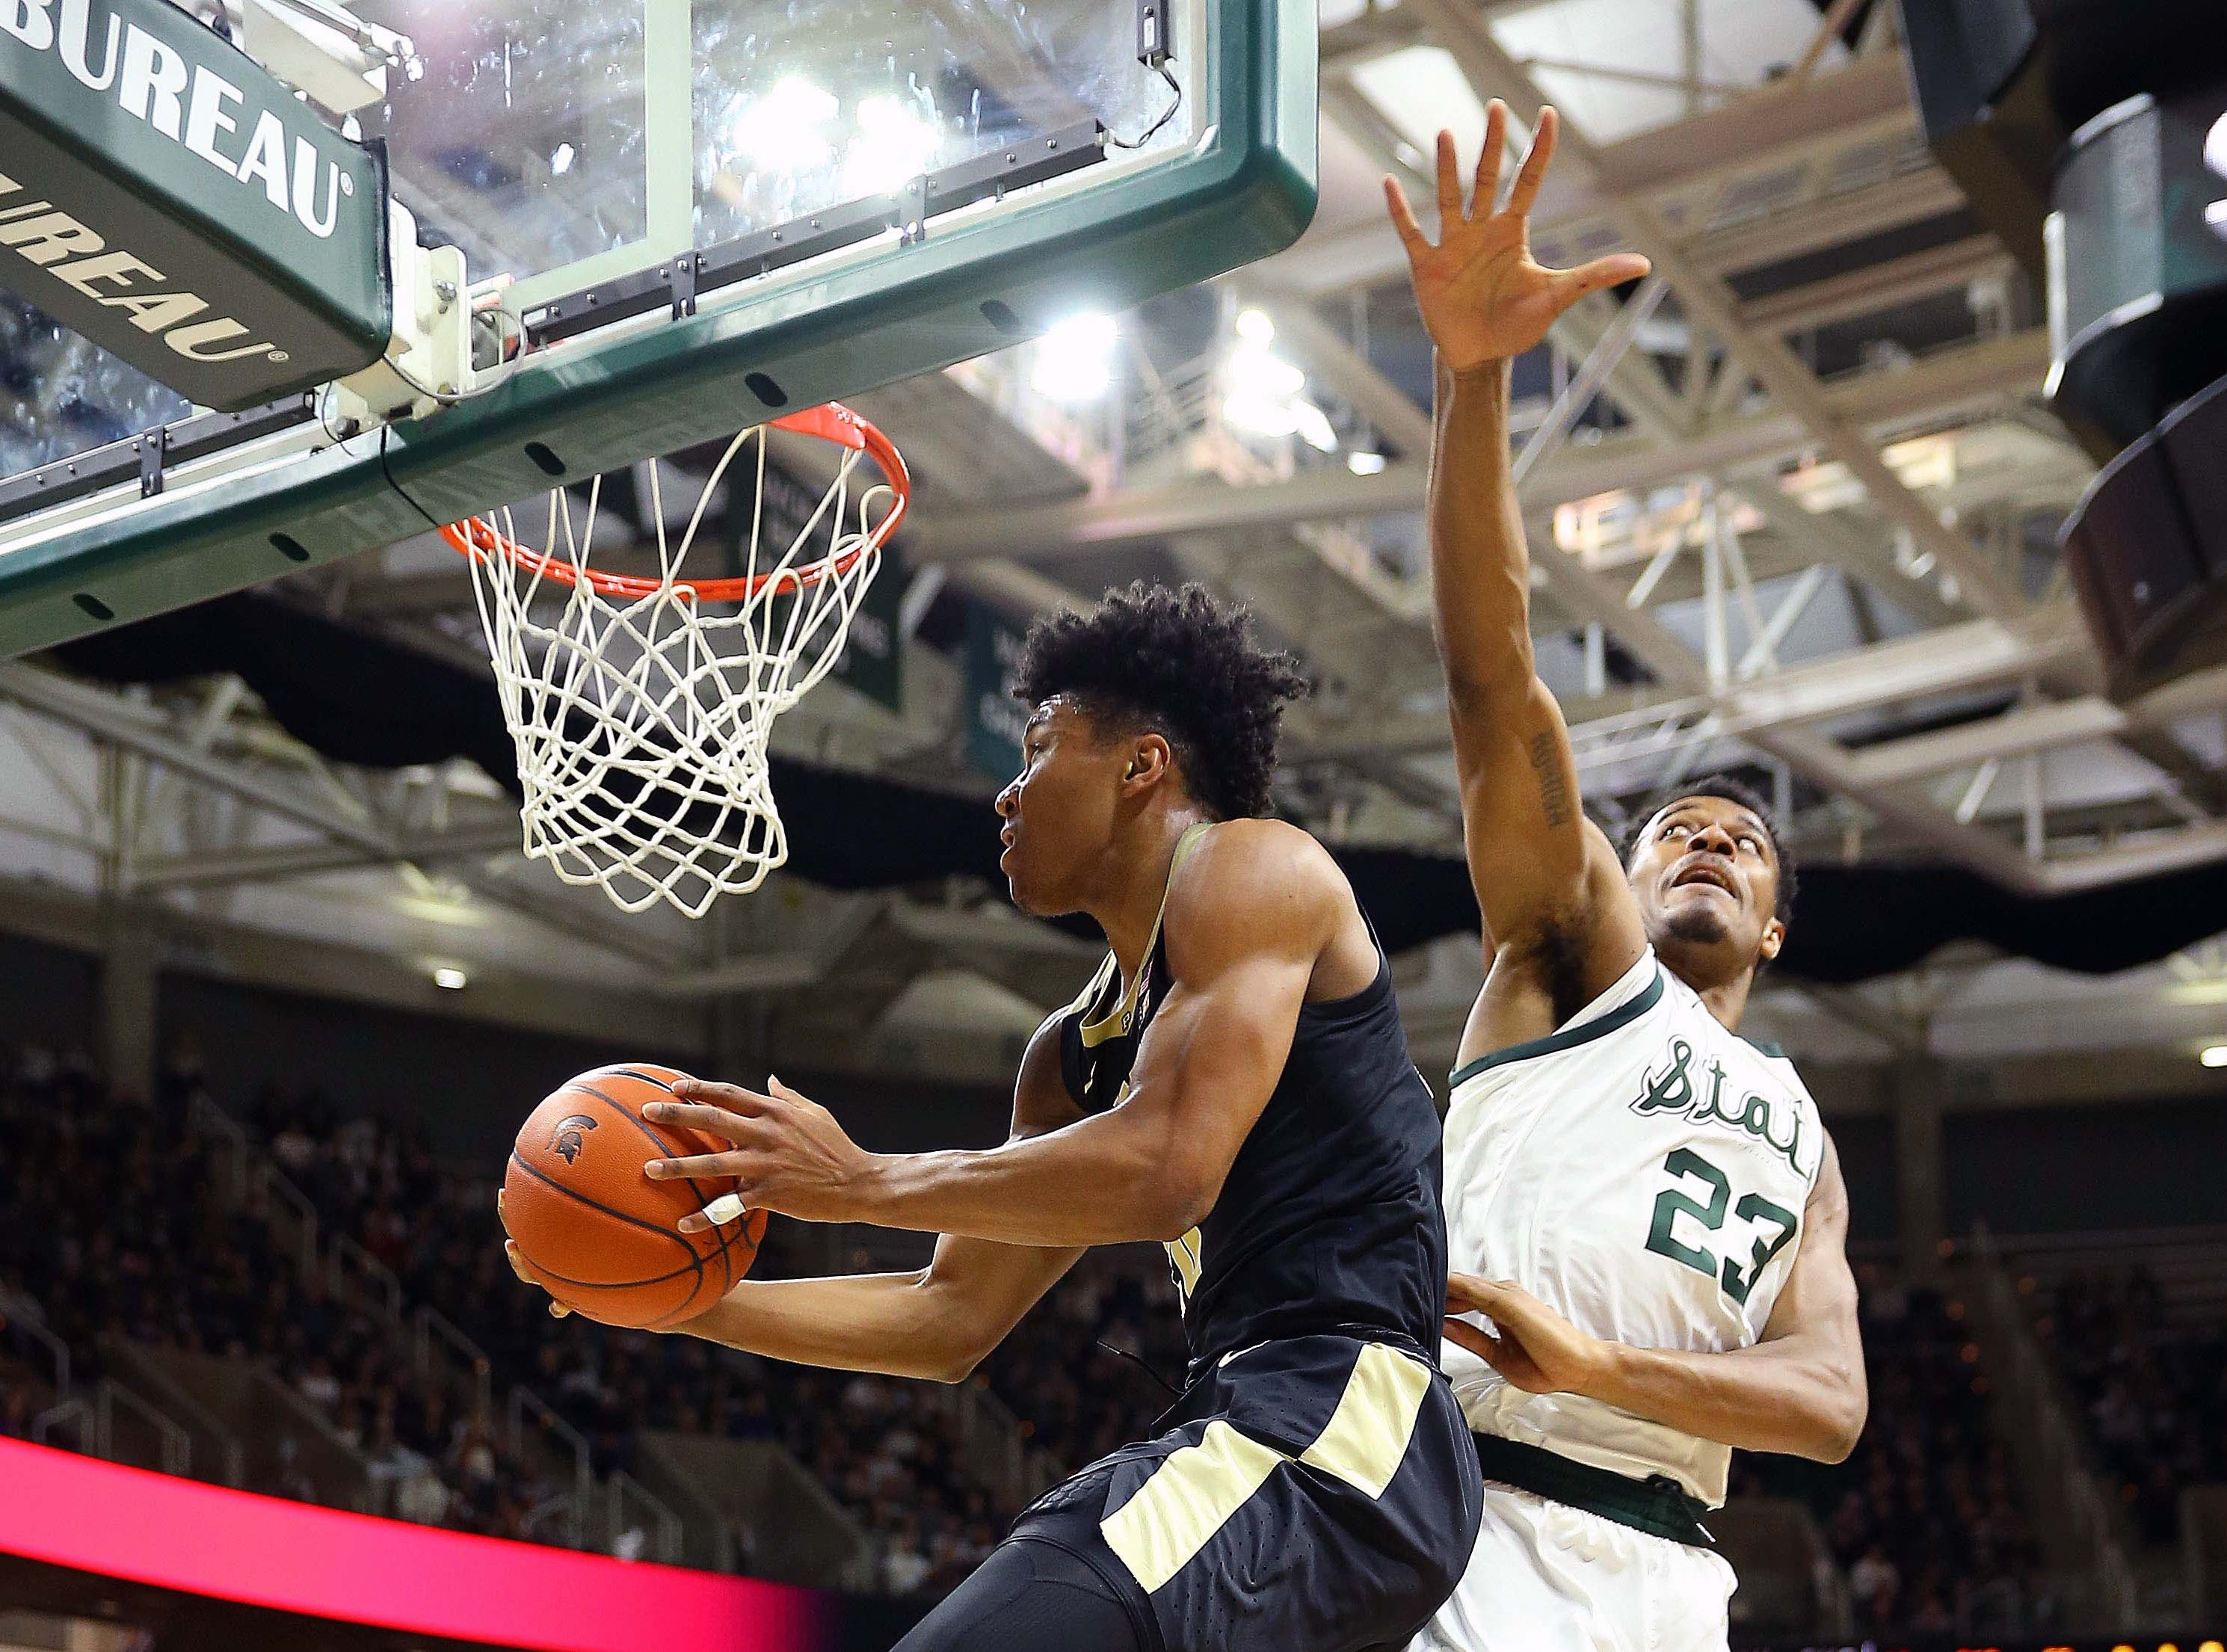 Jan 8, 2019; East Lansing, MI, USA; Purdue Boilermakers guard Eric Hunter Jr. (2) lays the ball up in front of Michigan State Spartans forward Xavier Tillman (23) during the first half of a game at the Breslin Center. Mandatory Credit: Mike Carter-USA TODAY Sports